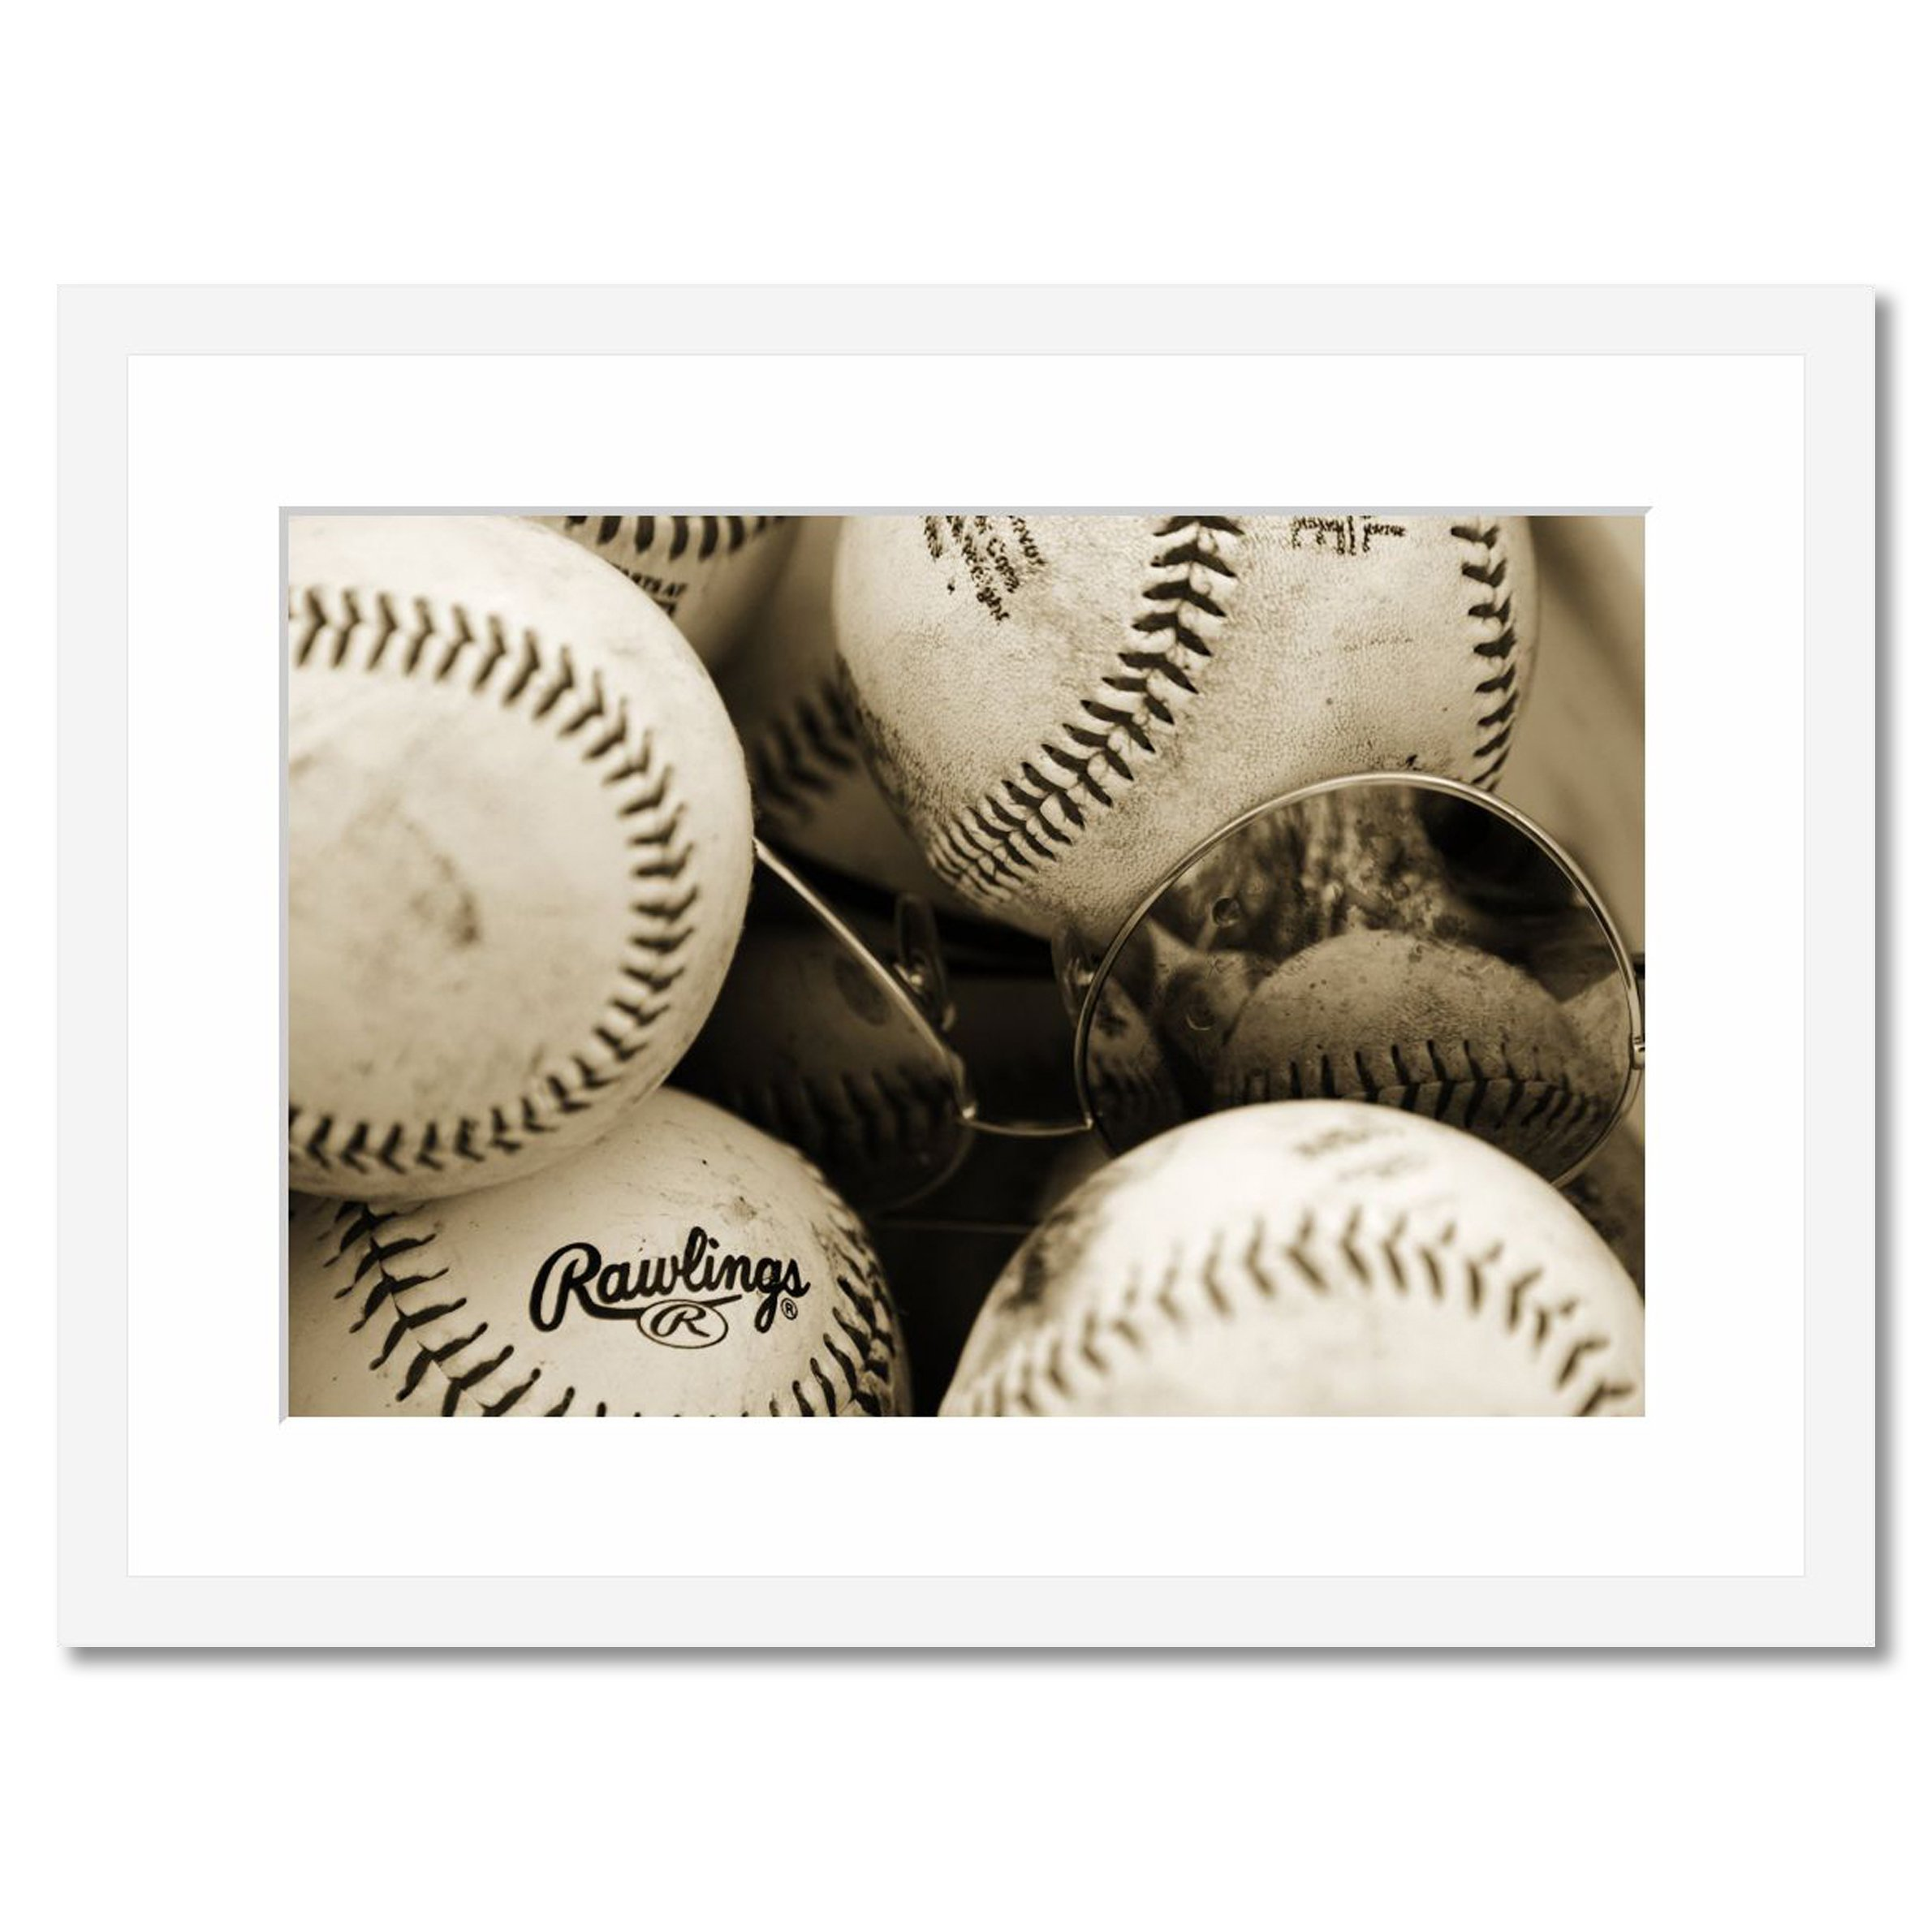 eFrame Fine Art | Baseball & Sunglasses - Sepia Room Decor Gift Man Cave by Robert Evans 16'' X 24'' Framed Wall Art for Wall or Home Decor (Black, Brown, White Frame or No Frame)